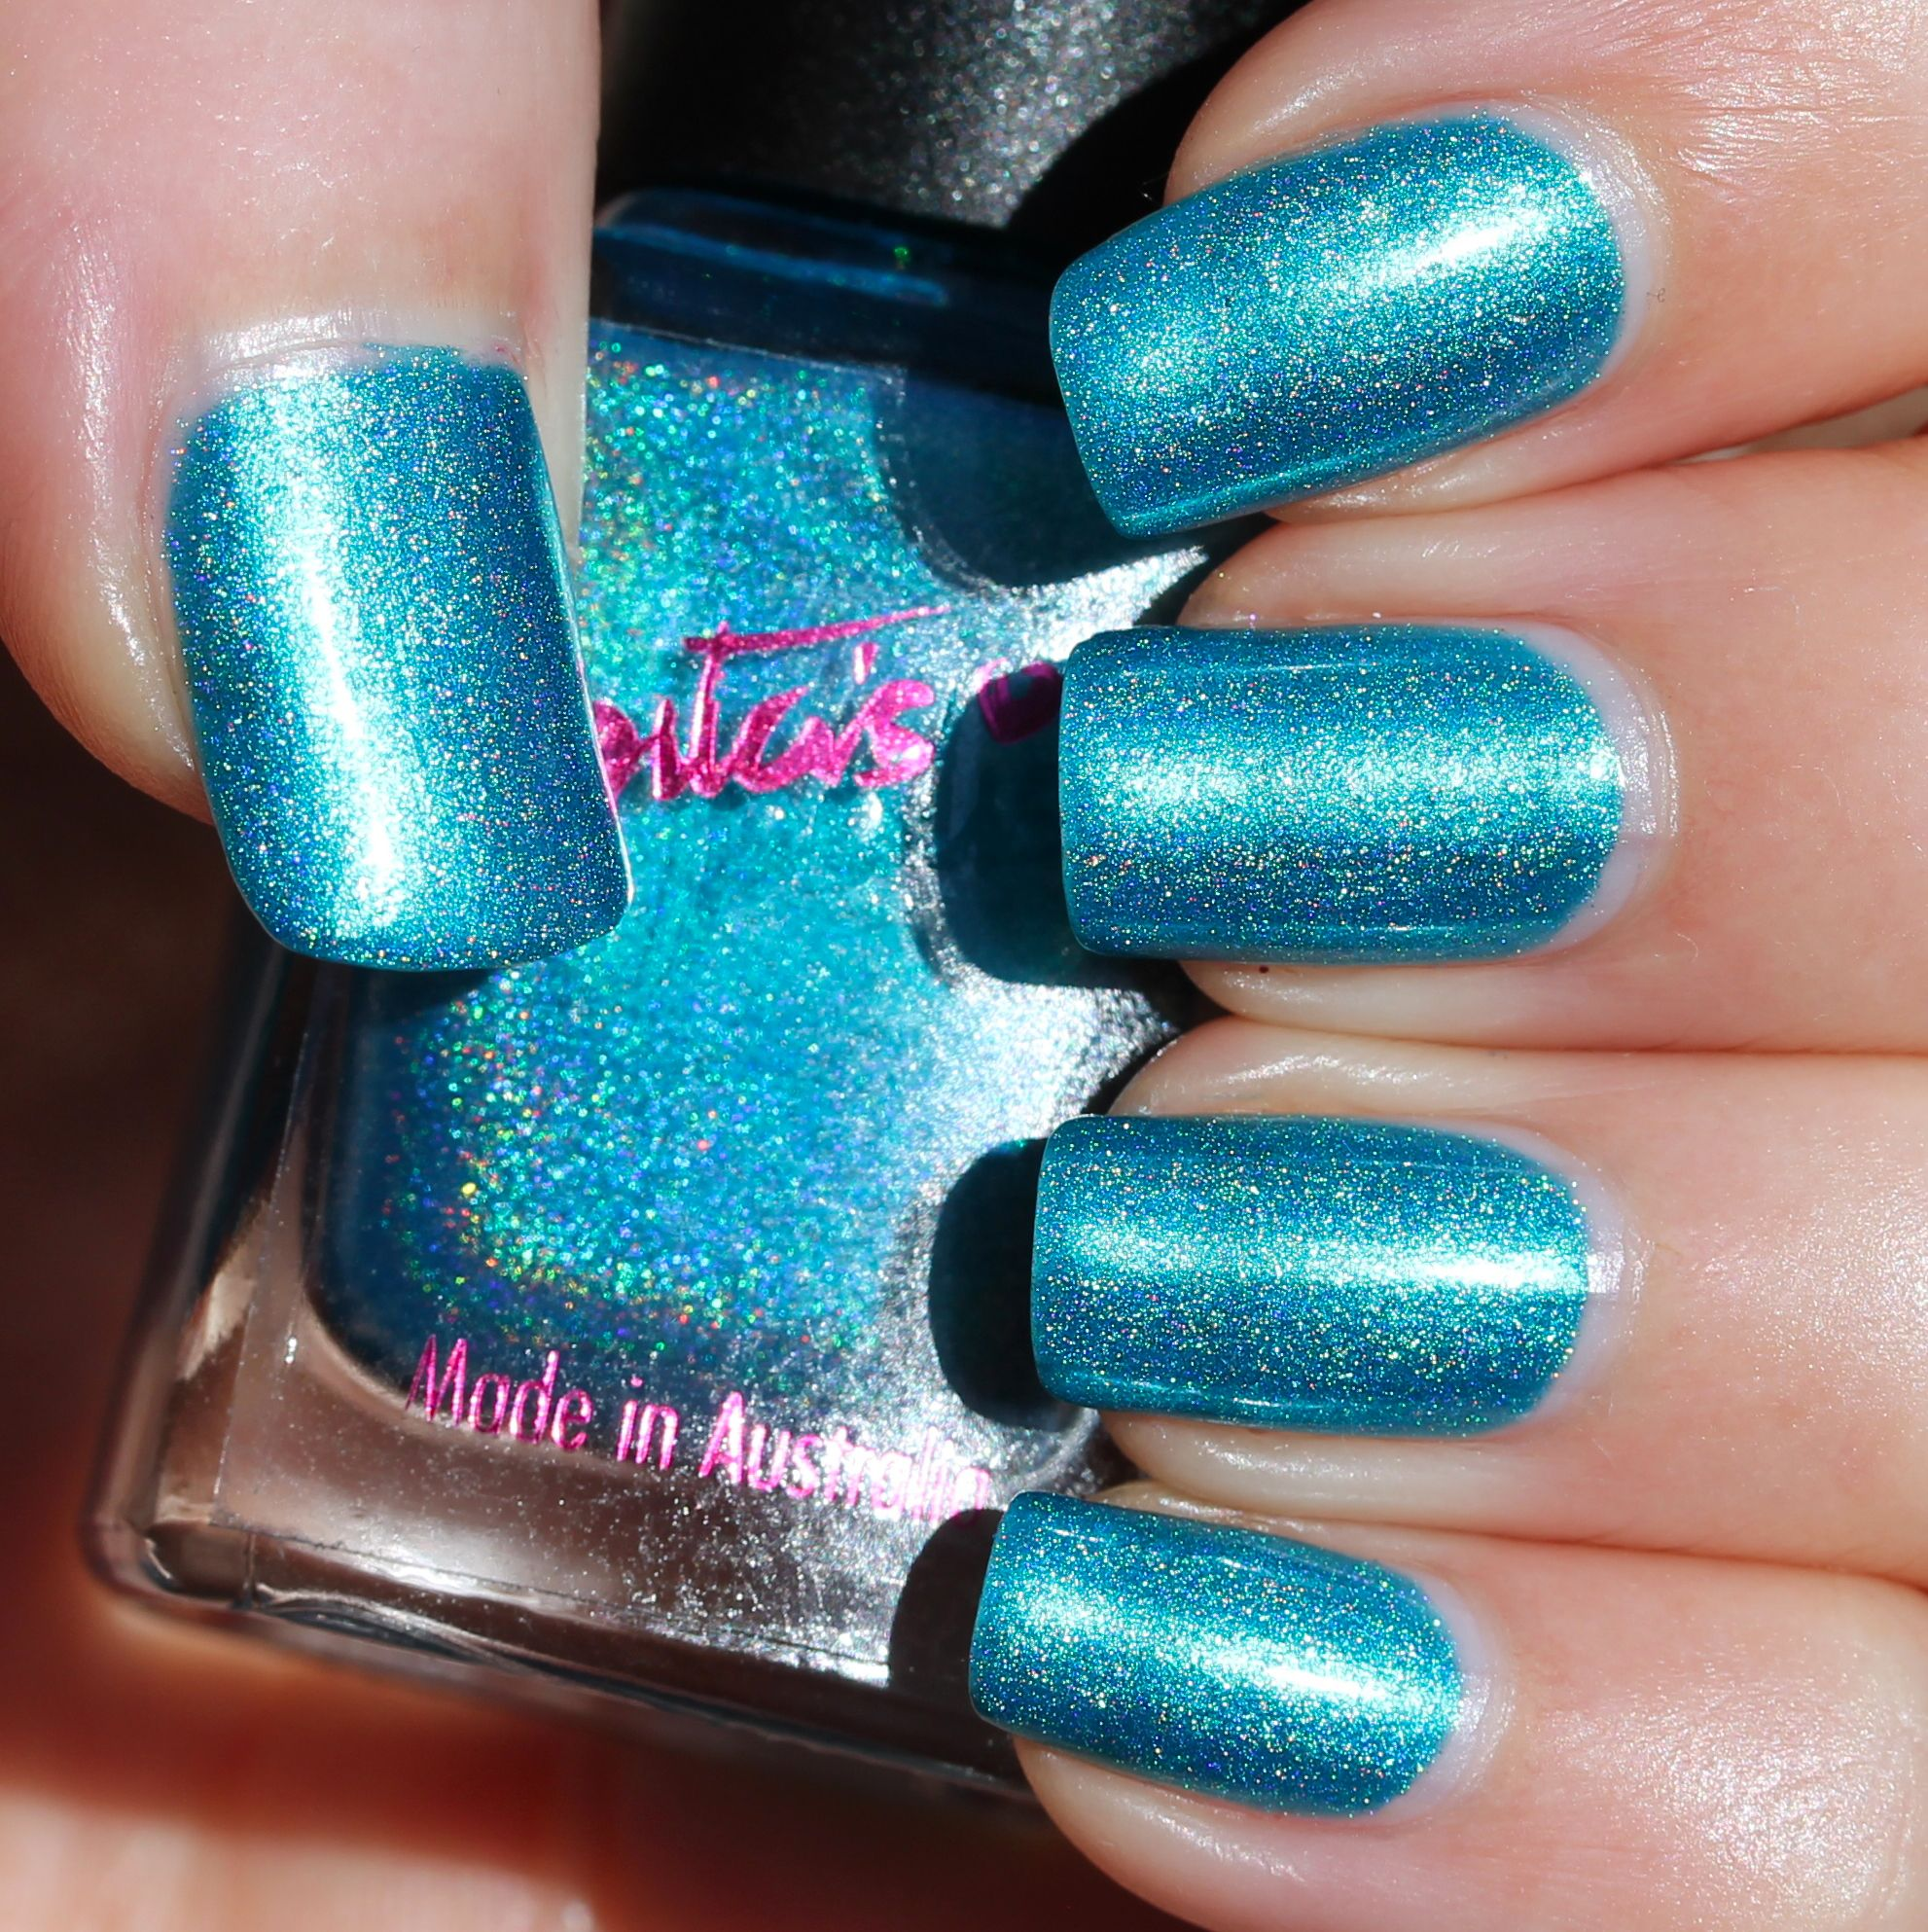 Peita's Polish Beauty is a Drag (What's Indie Box - May 2015 - Diva & Drag Queens)